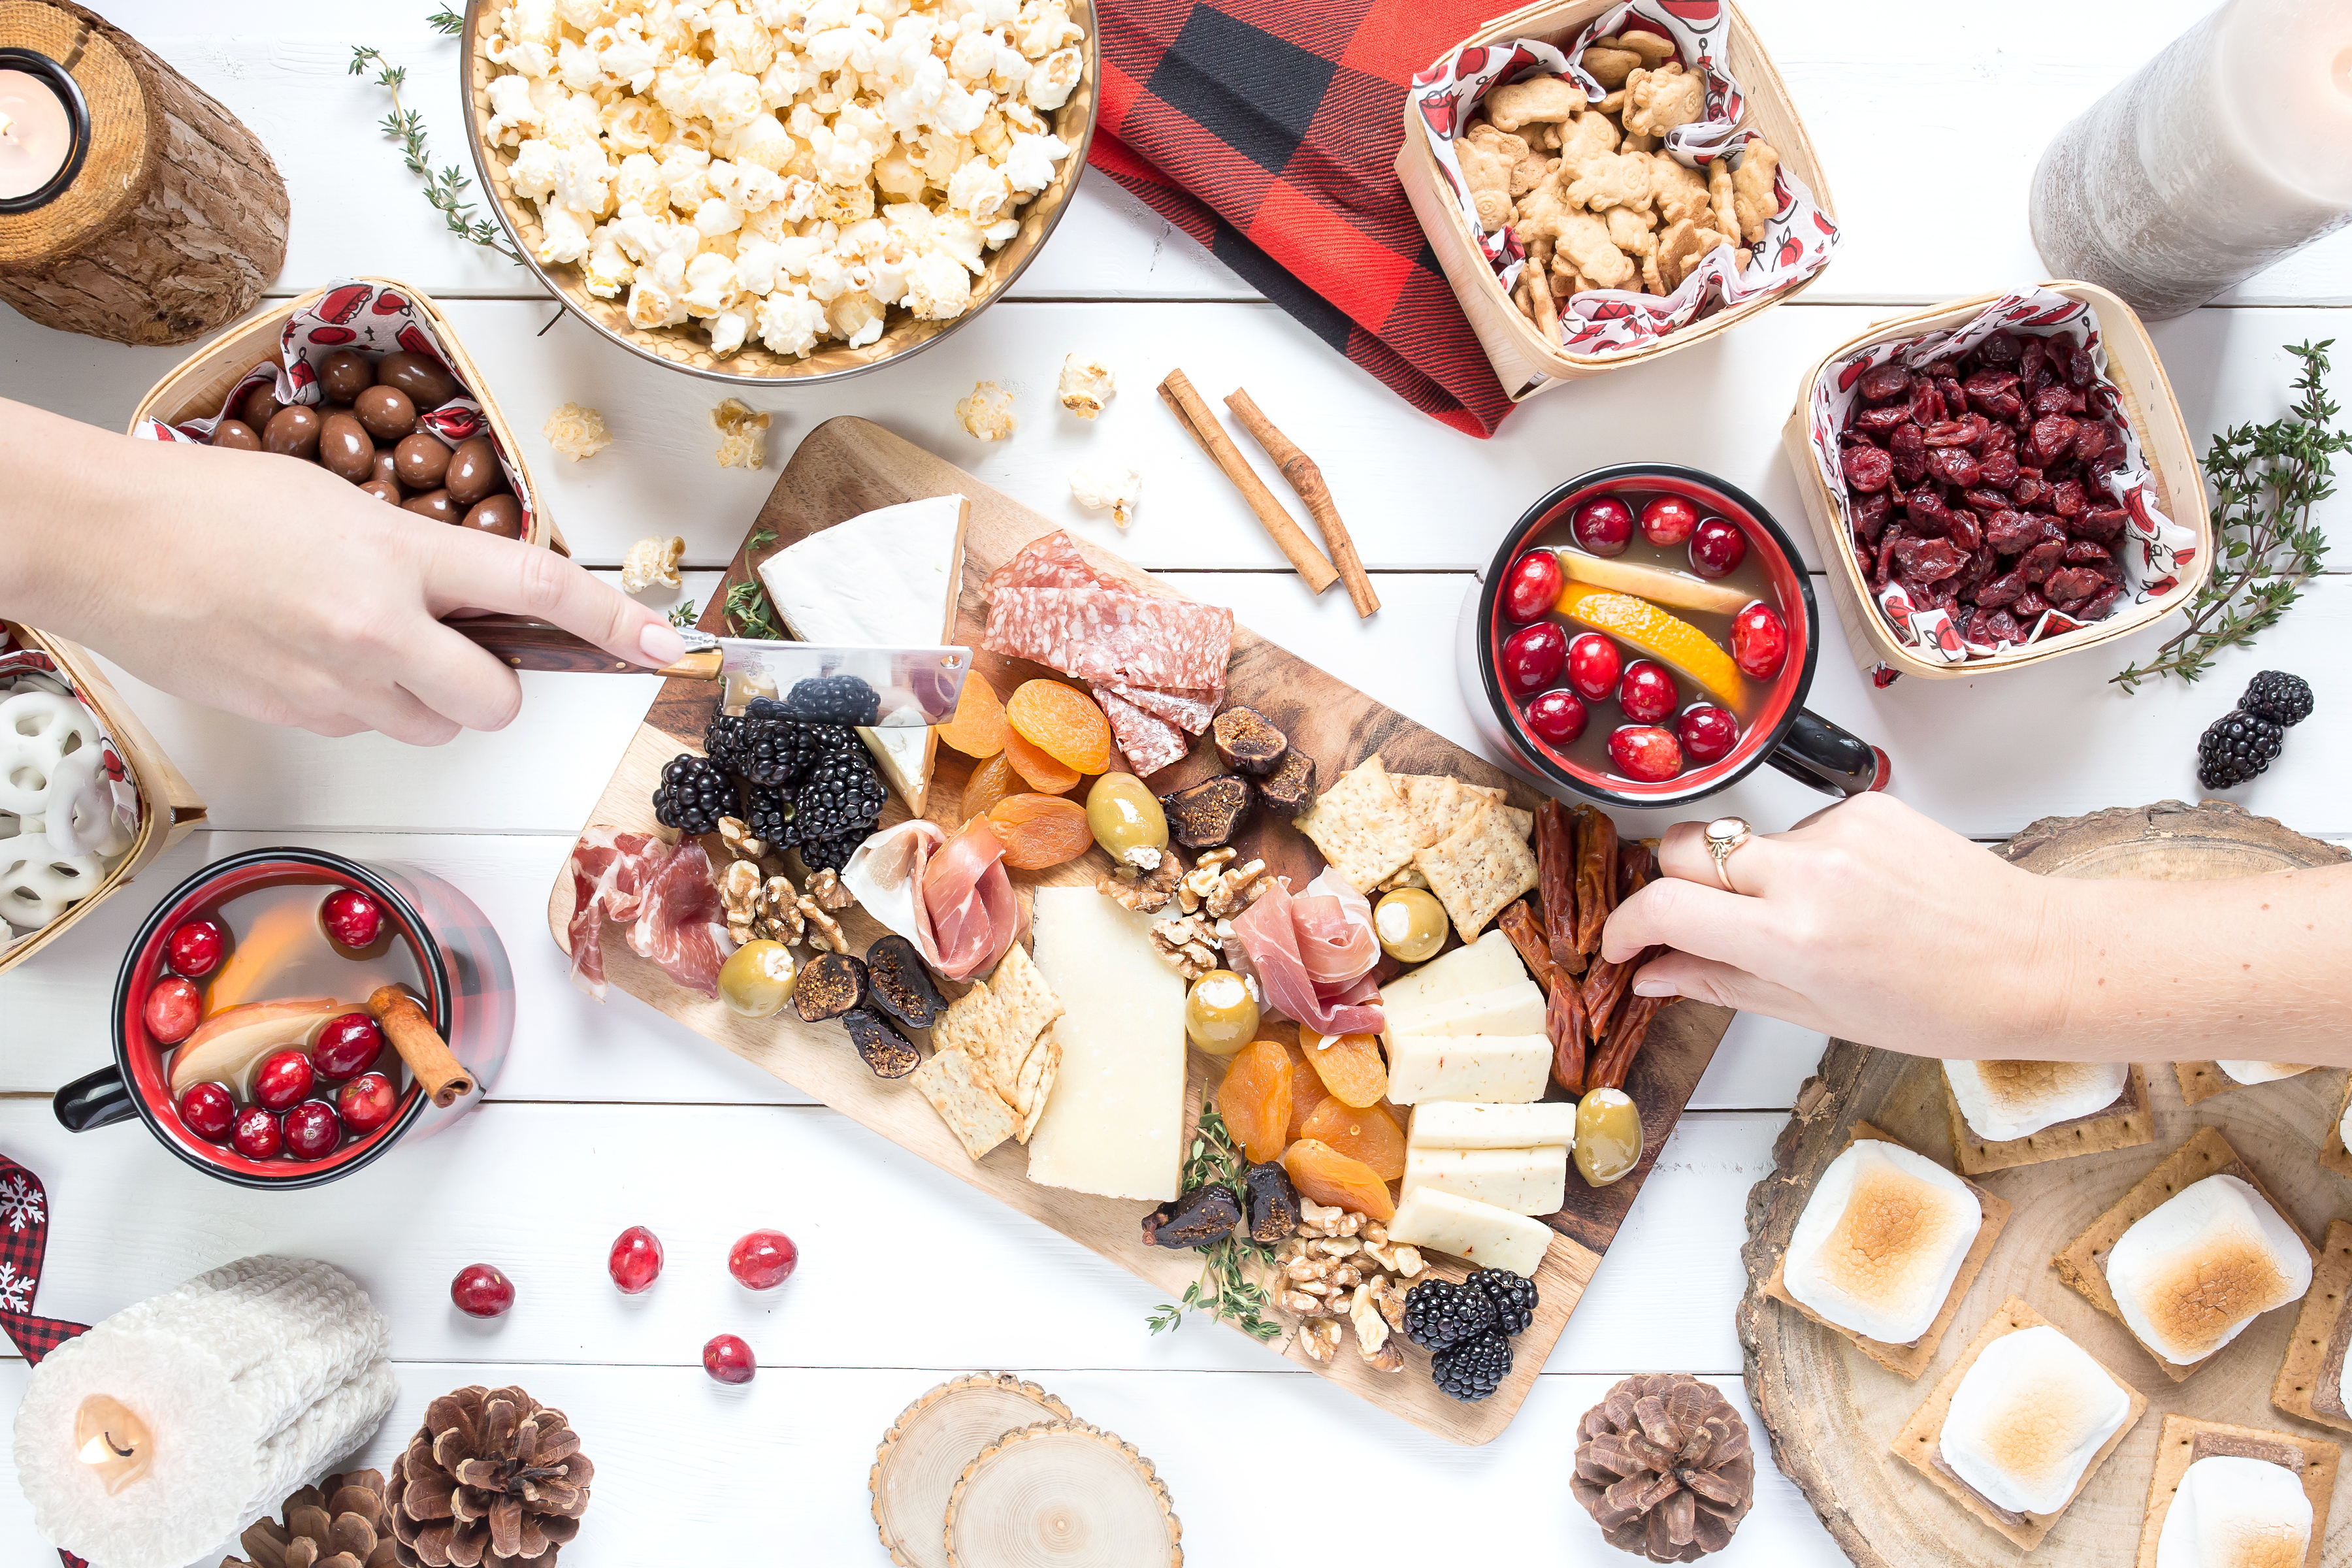 Hygge moments are the small everyday moments that make you happy, like sharing food with friends